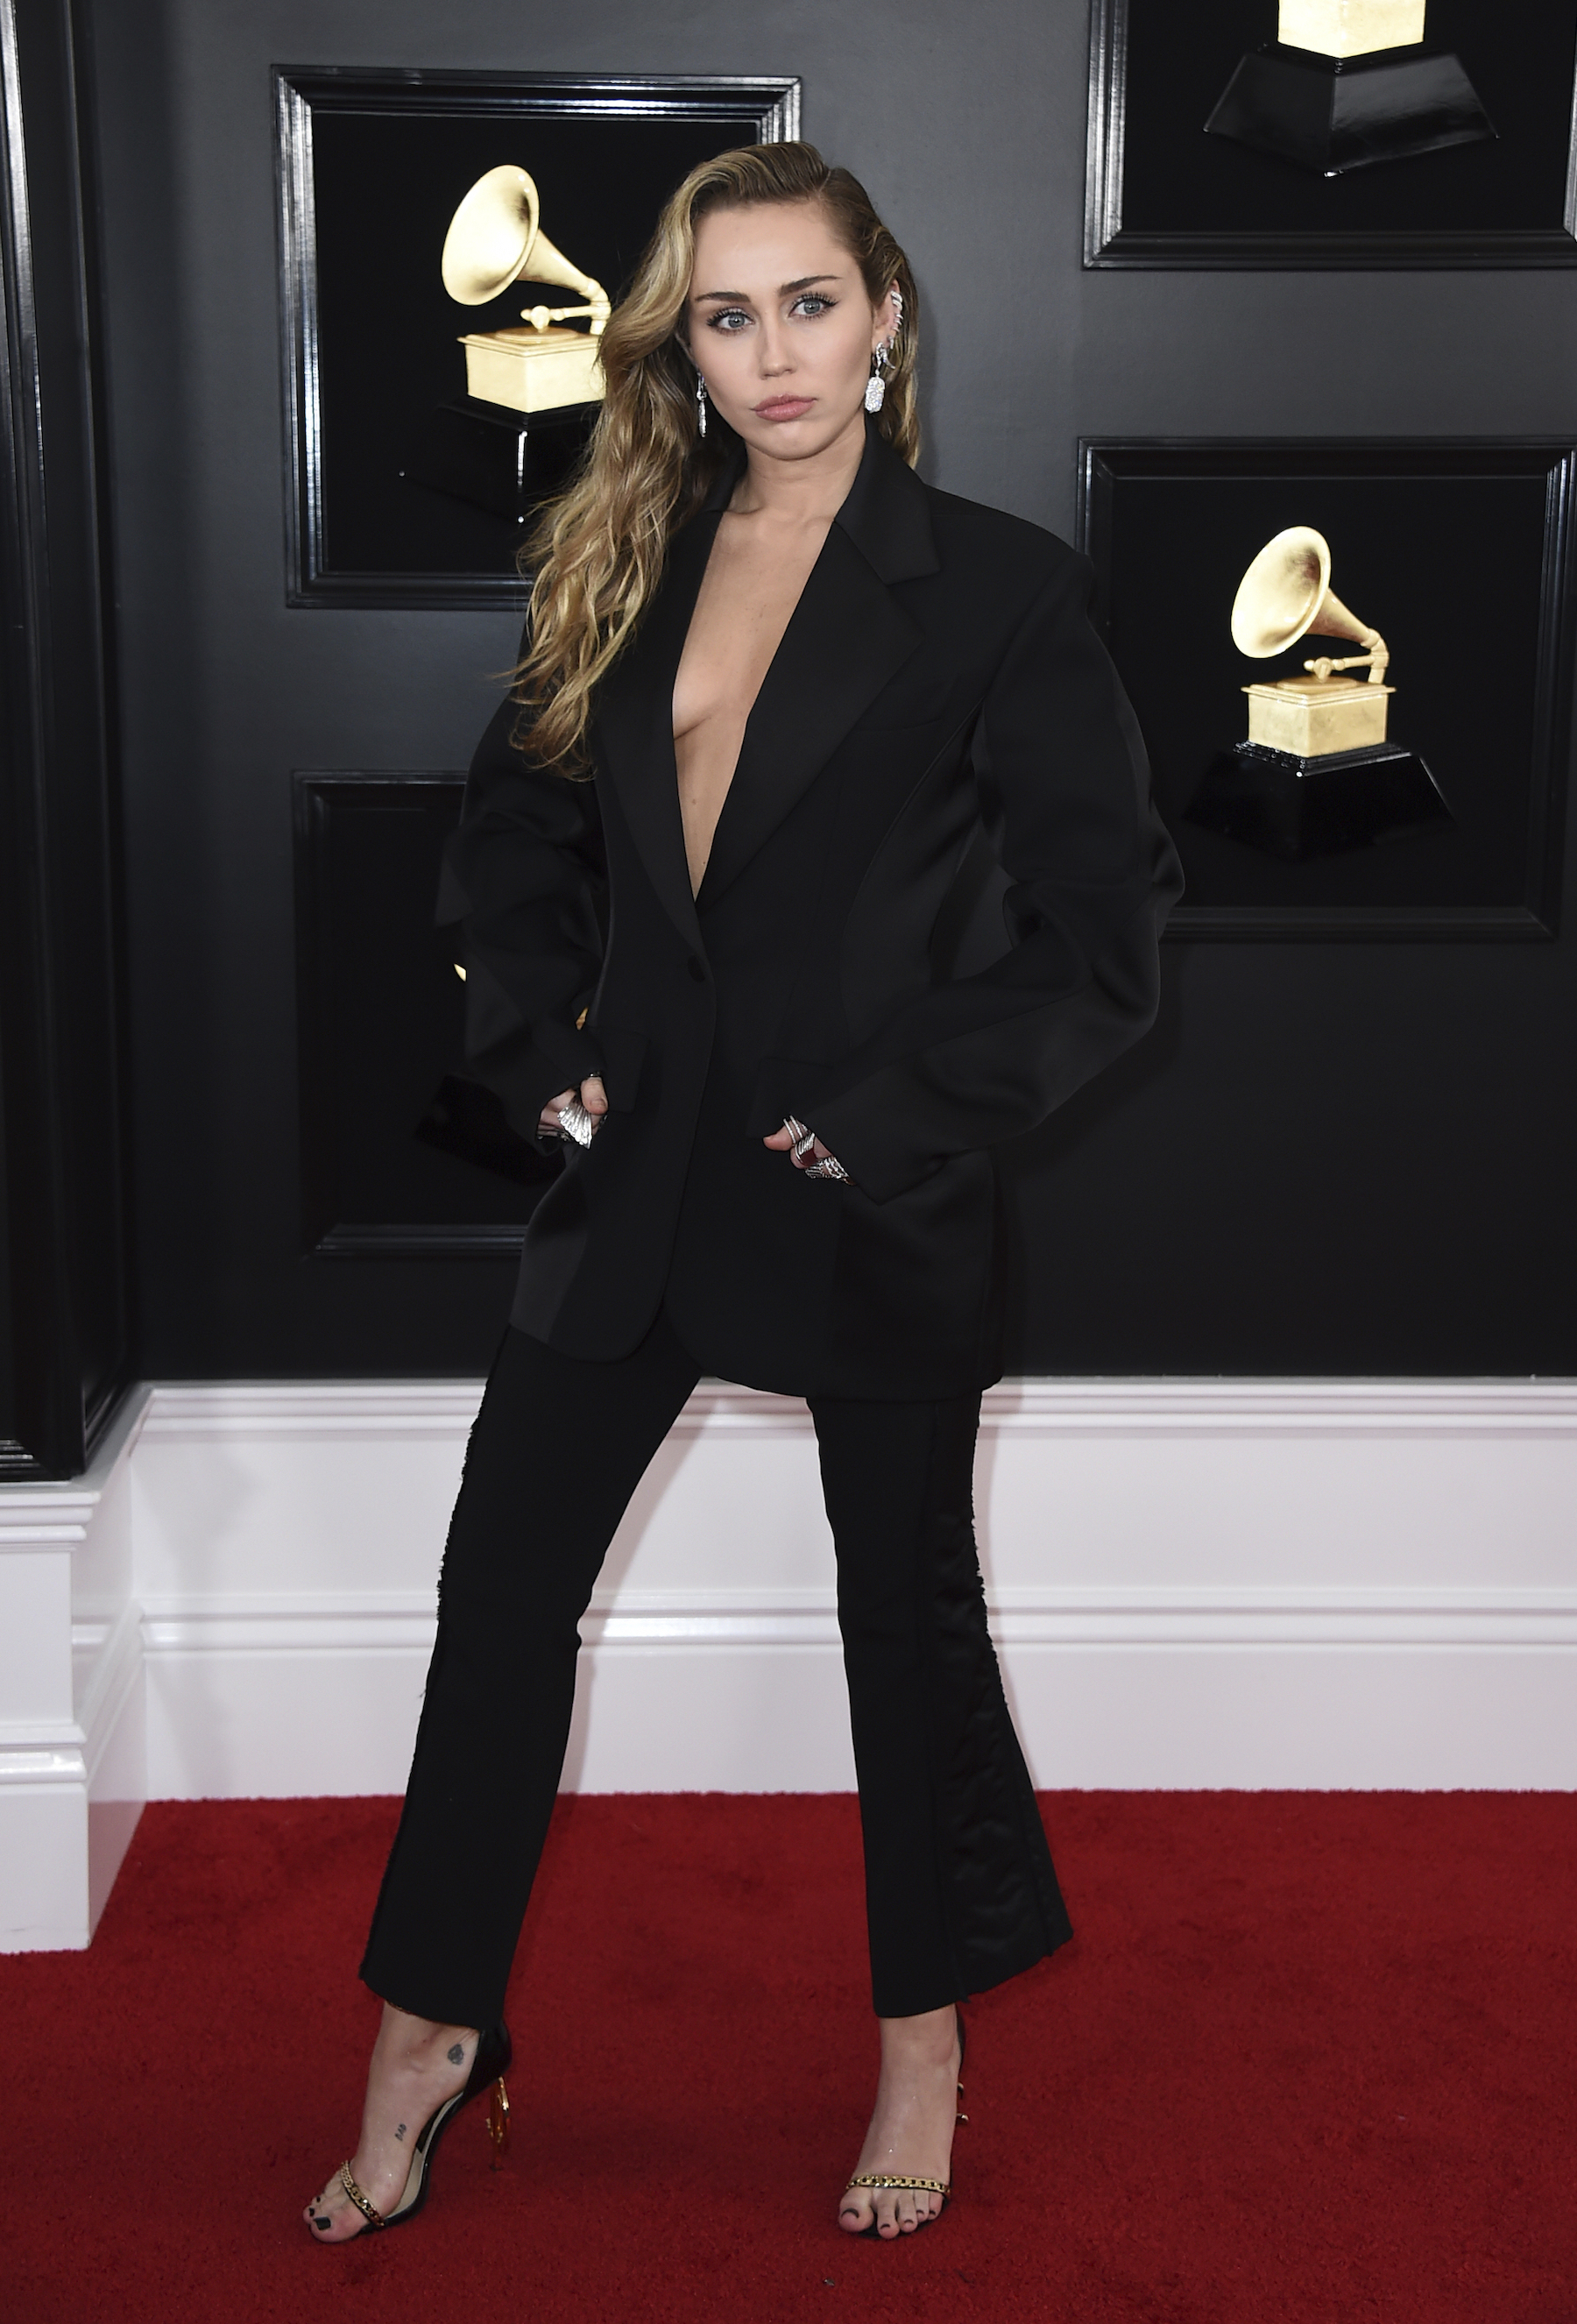 <div class='meta'><div class='origin-logo' data-origin='AP'></div><span class='caption-text' data-credit='Jordan Strauss/Invision/AP'>Miley Cyrus arrives at the 61st annual Grammy Awards at the Staples Center on Sunday, Feb. 10, 2019, in Los Angeles.</span></div>